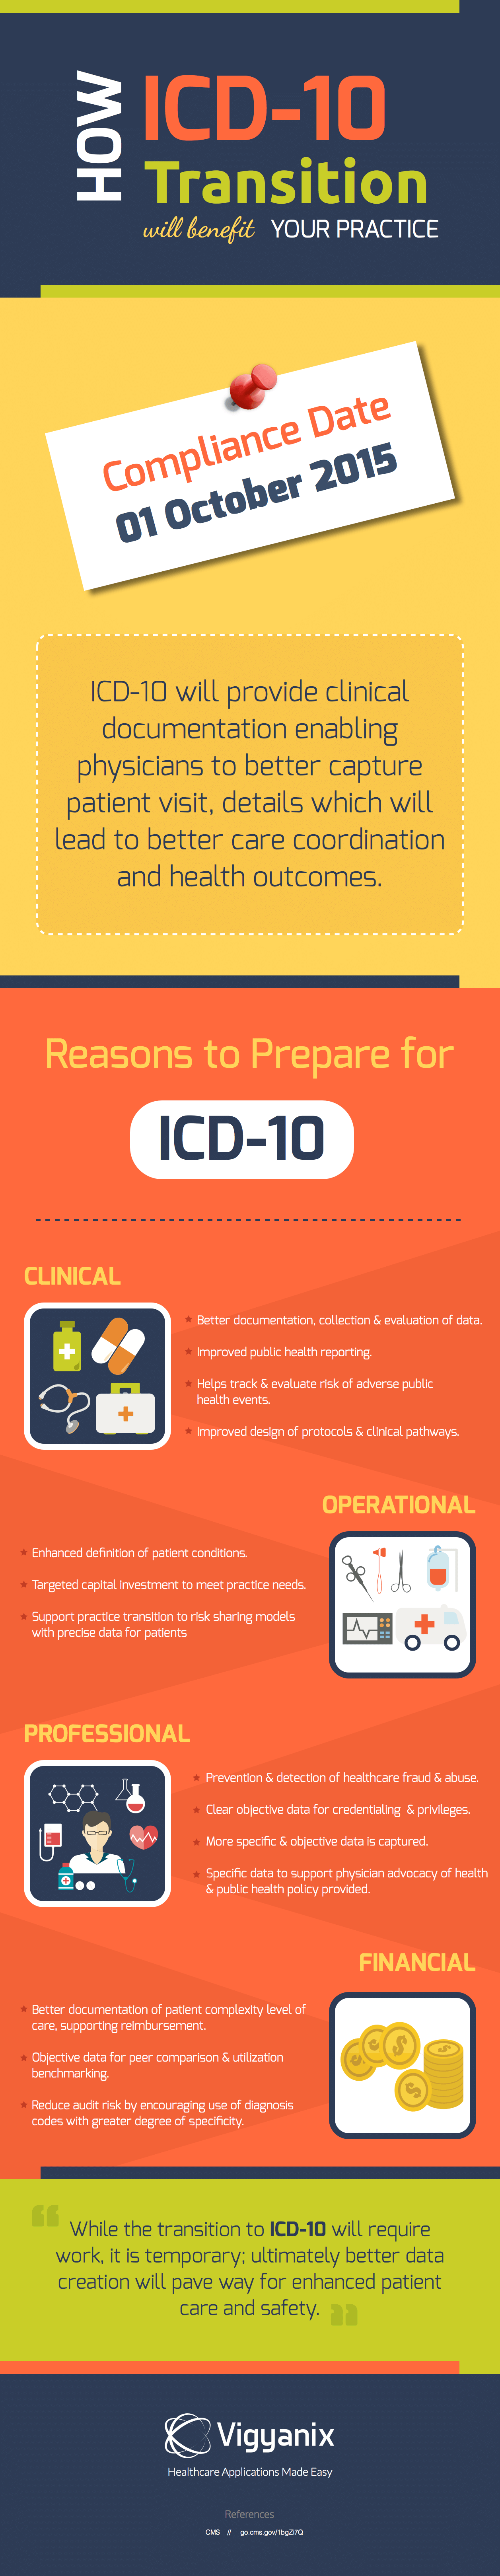 ICD 10 transition -infographic